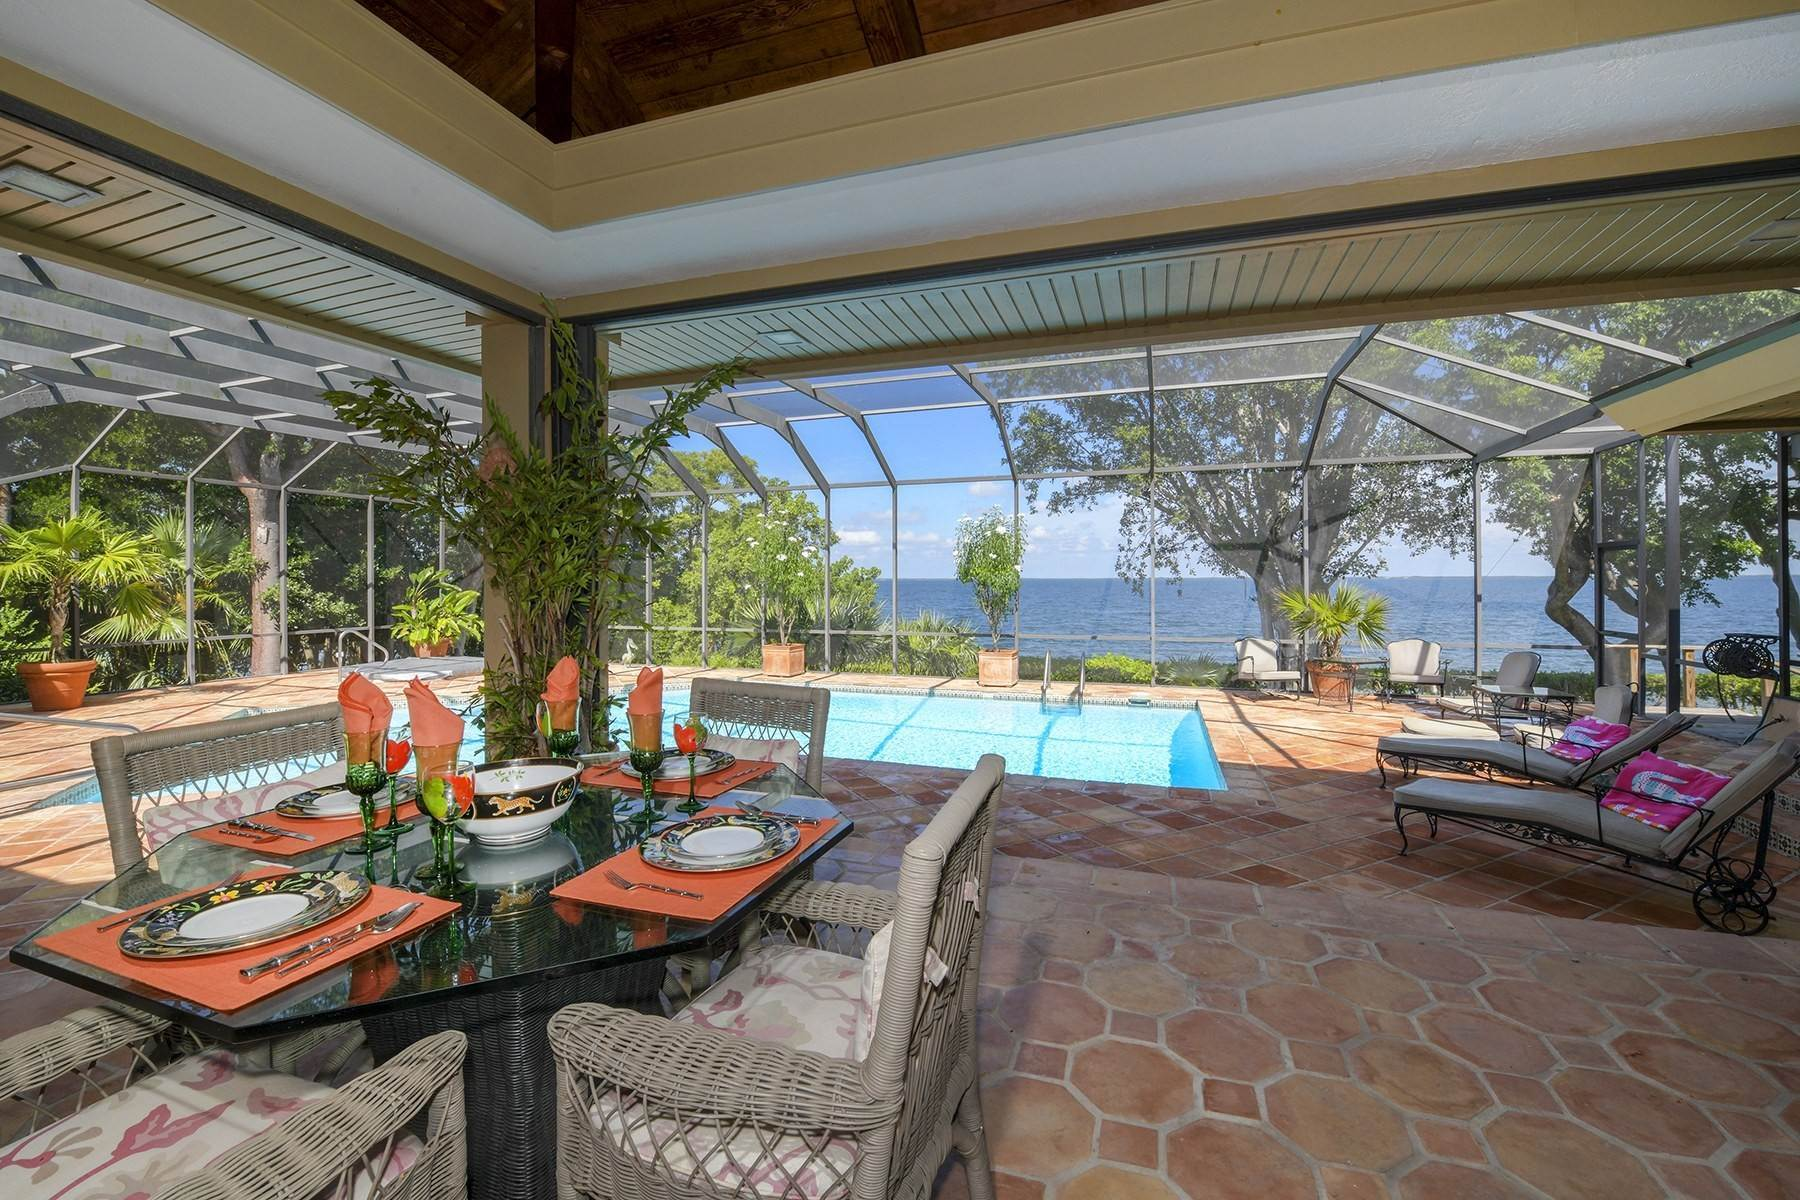 43. Property for Sale at 10 Cannon Point, Key Largo, FL 10 Cannon Point Key Largo, Florida 33037 United States